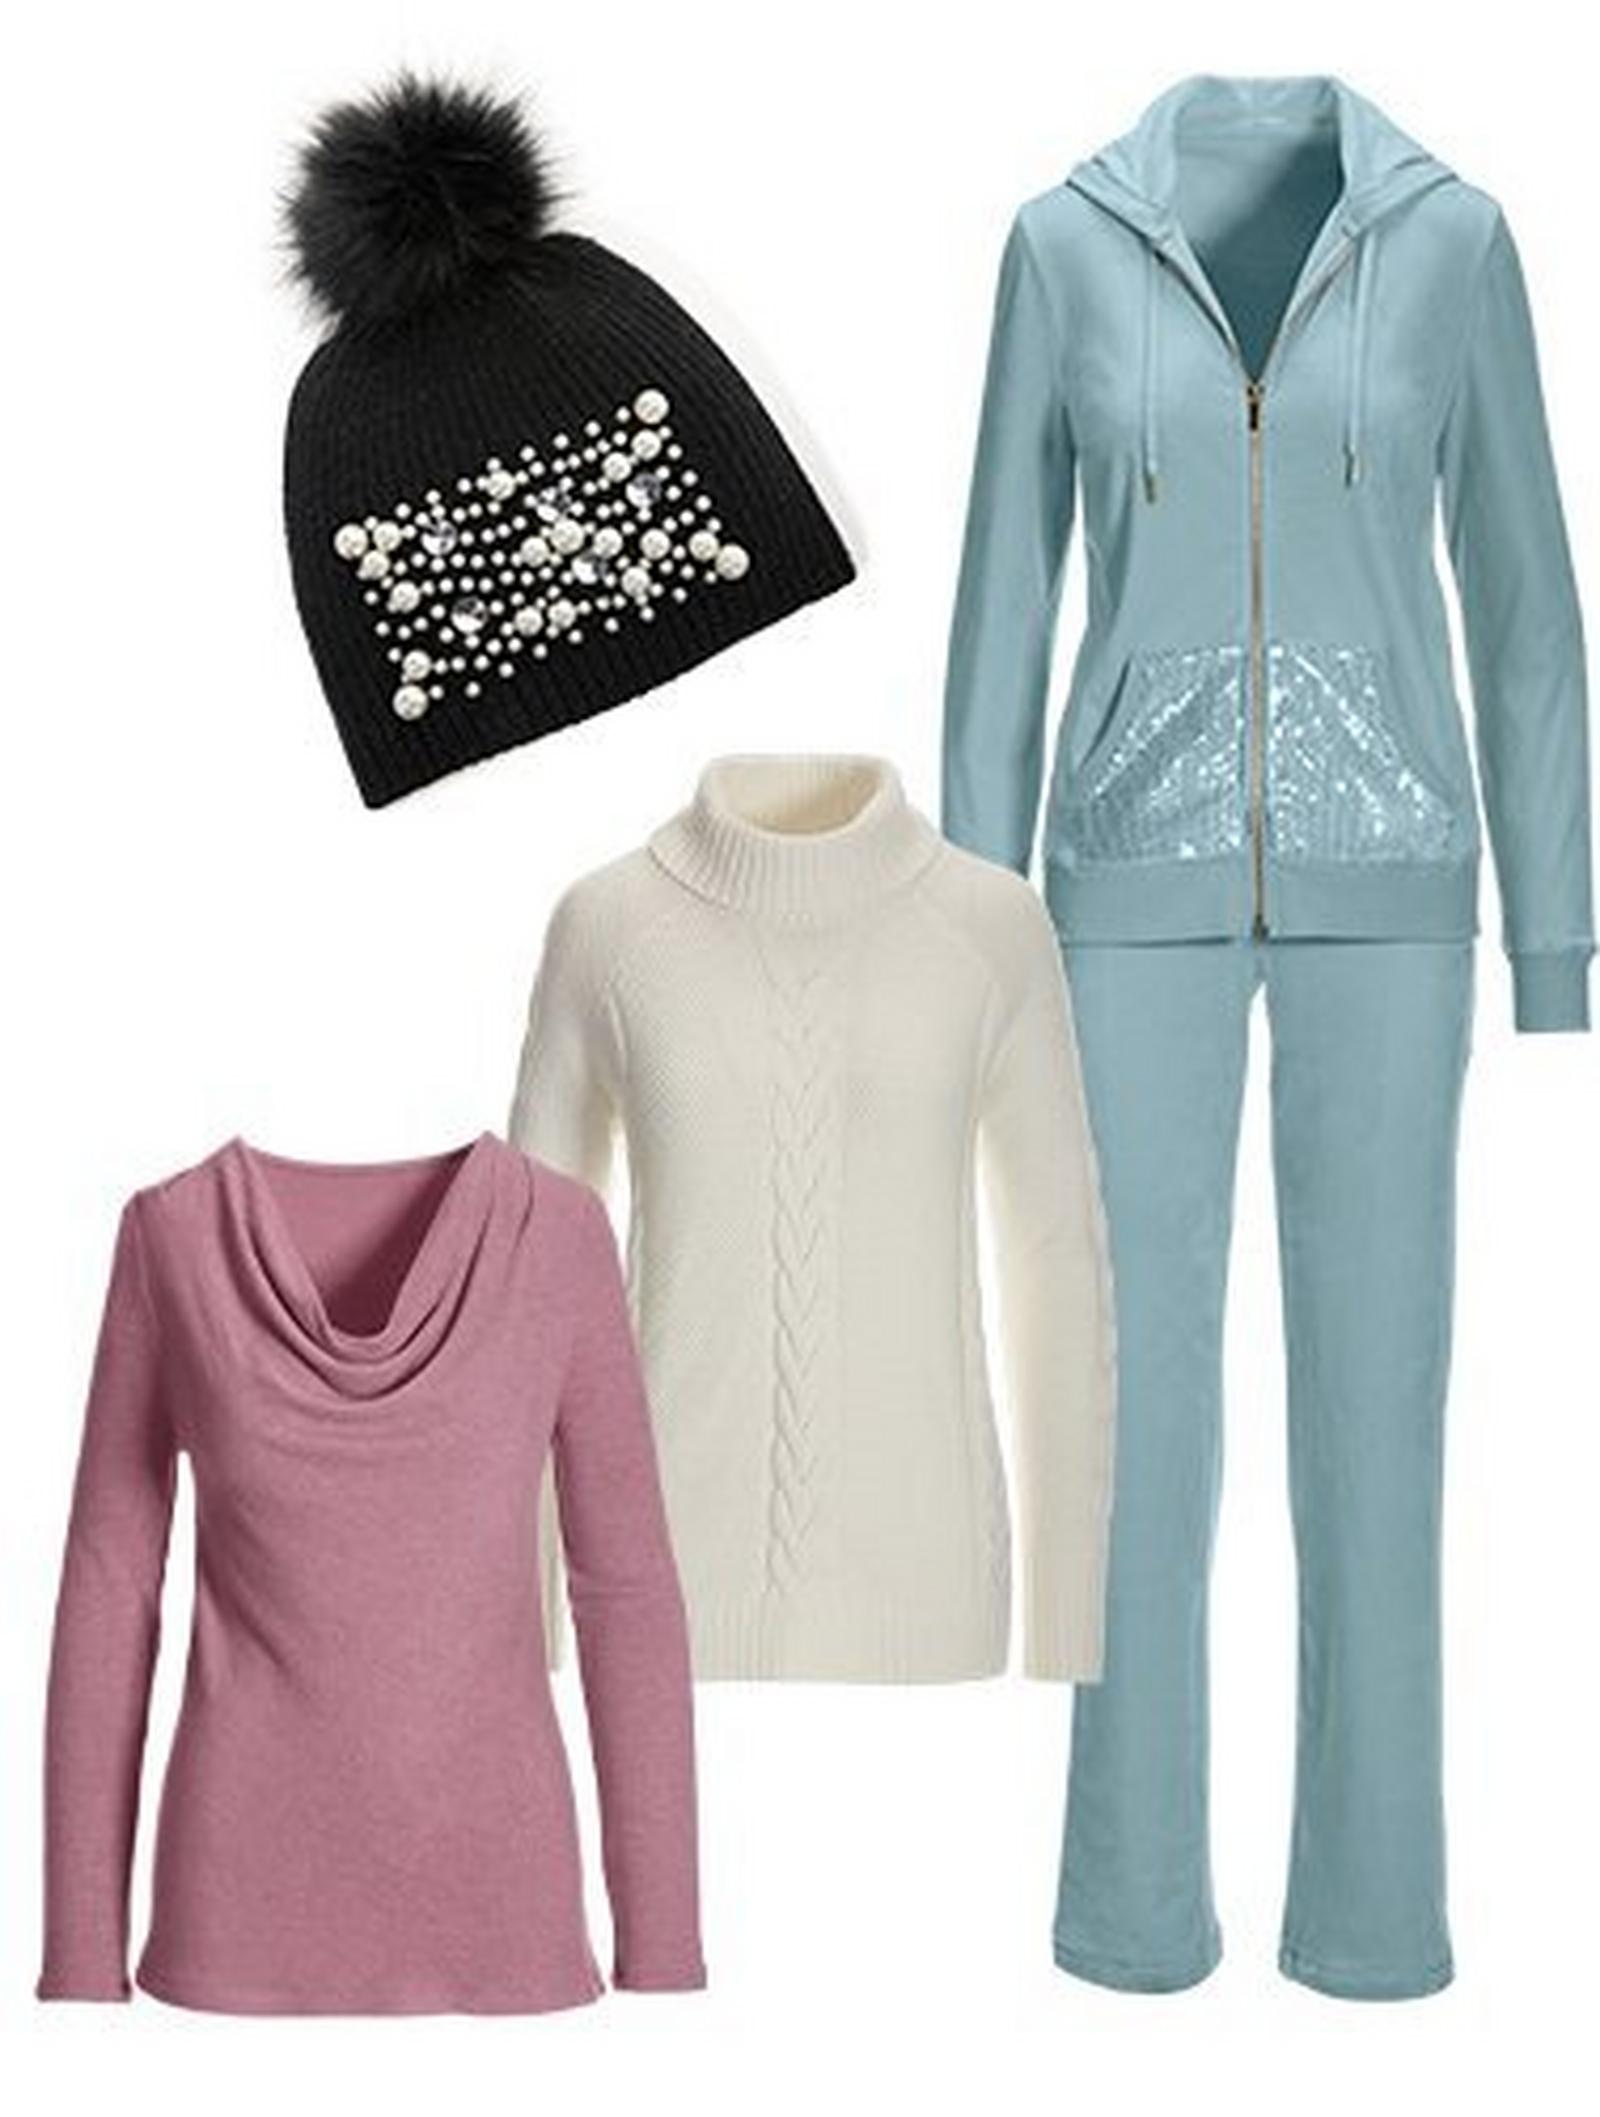 mauve cowl-neck long-sleeve hacci top, off-white cable turtleneck sweater, light blue sequin embellished two-piece set, and a black pearl embellished beanie.